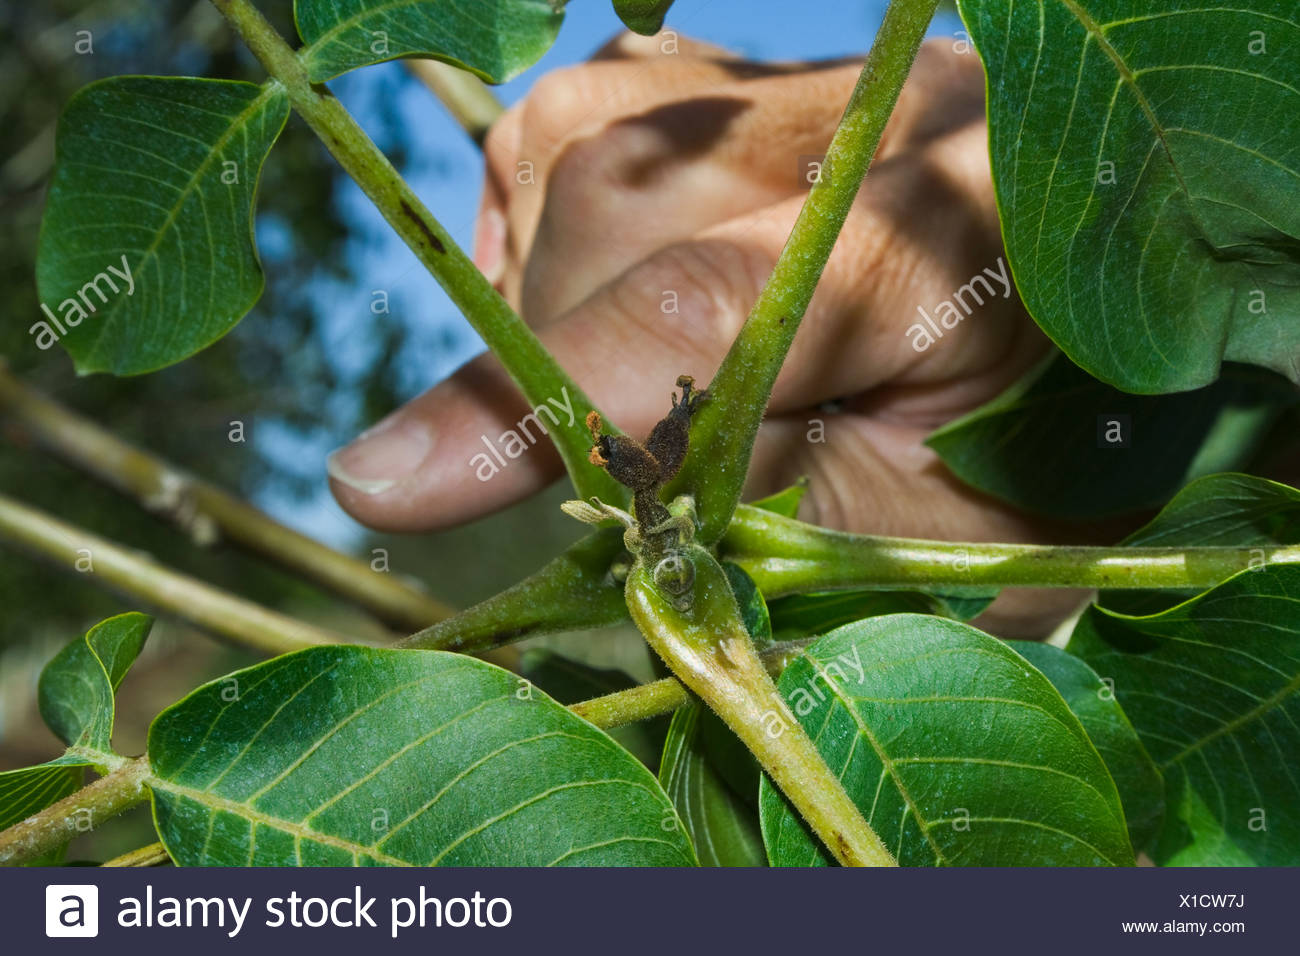 Agriculture - Killed immature walnuts caused by a heavy unusual Spring freeze / near Dairyville, California, USA. - Stock Image